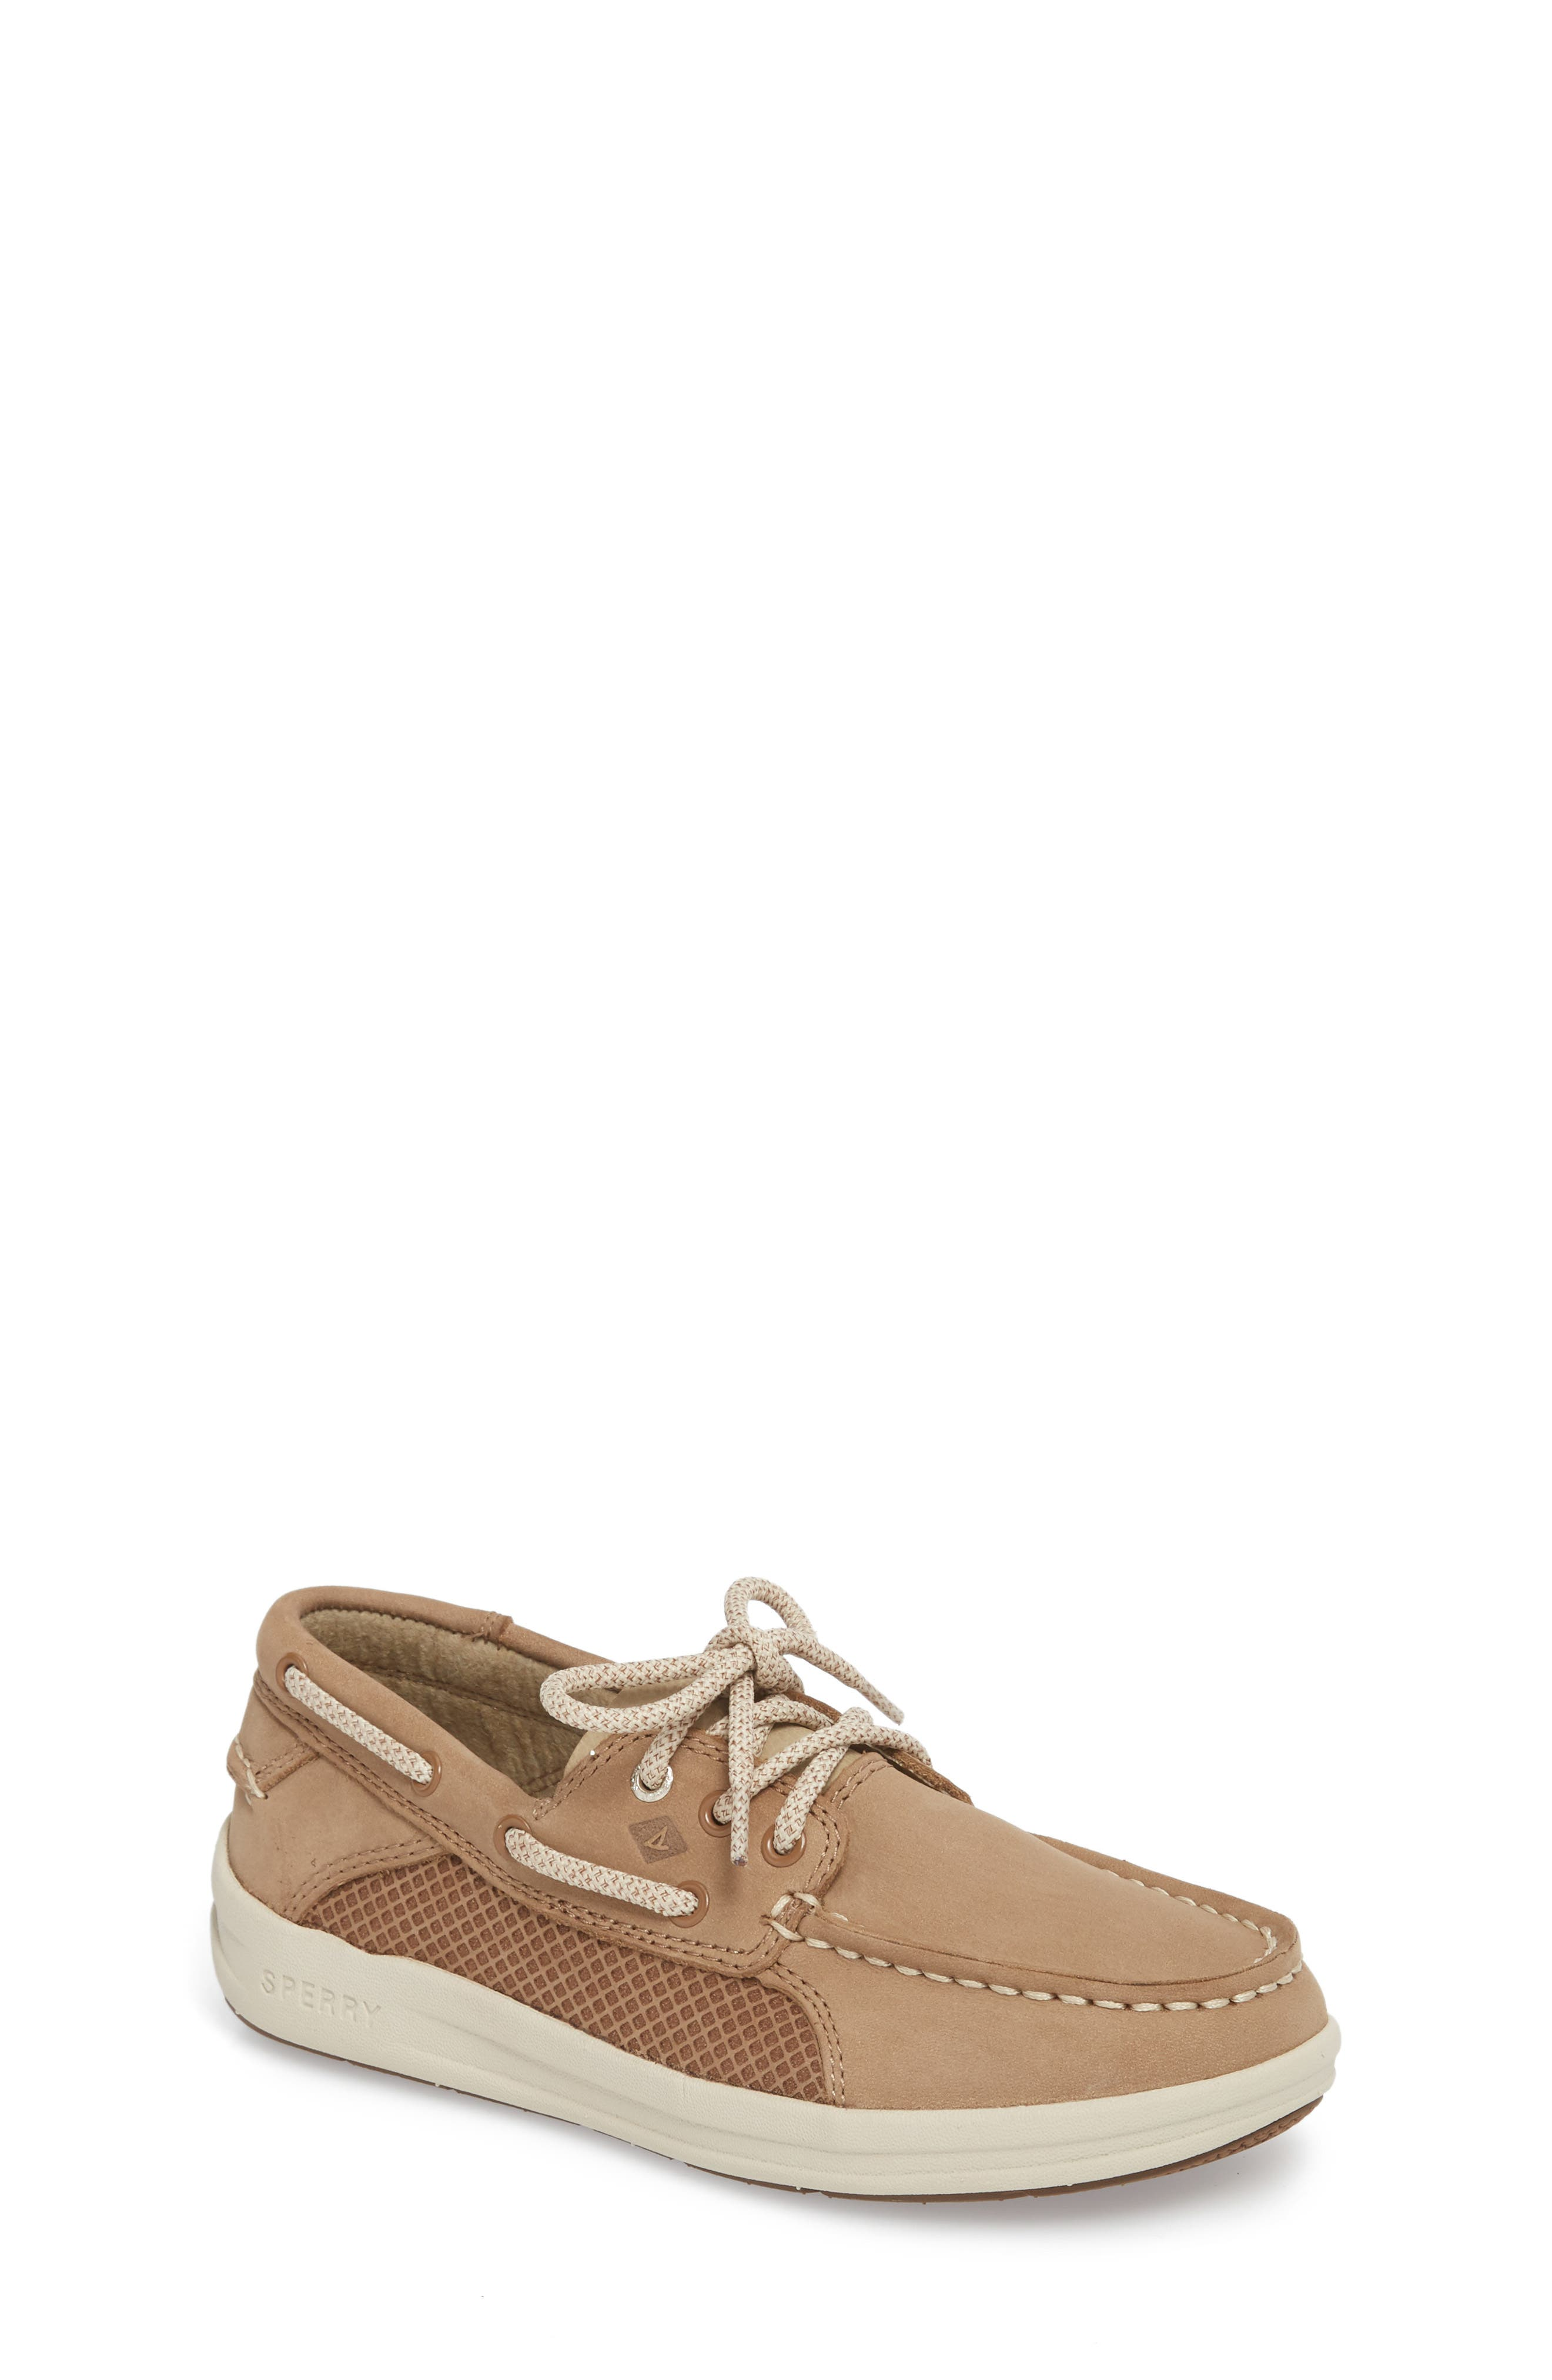 Sperry Gamefish Boat Shoe,                             Main thumbnail 1, color,                             Light Tan Leather